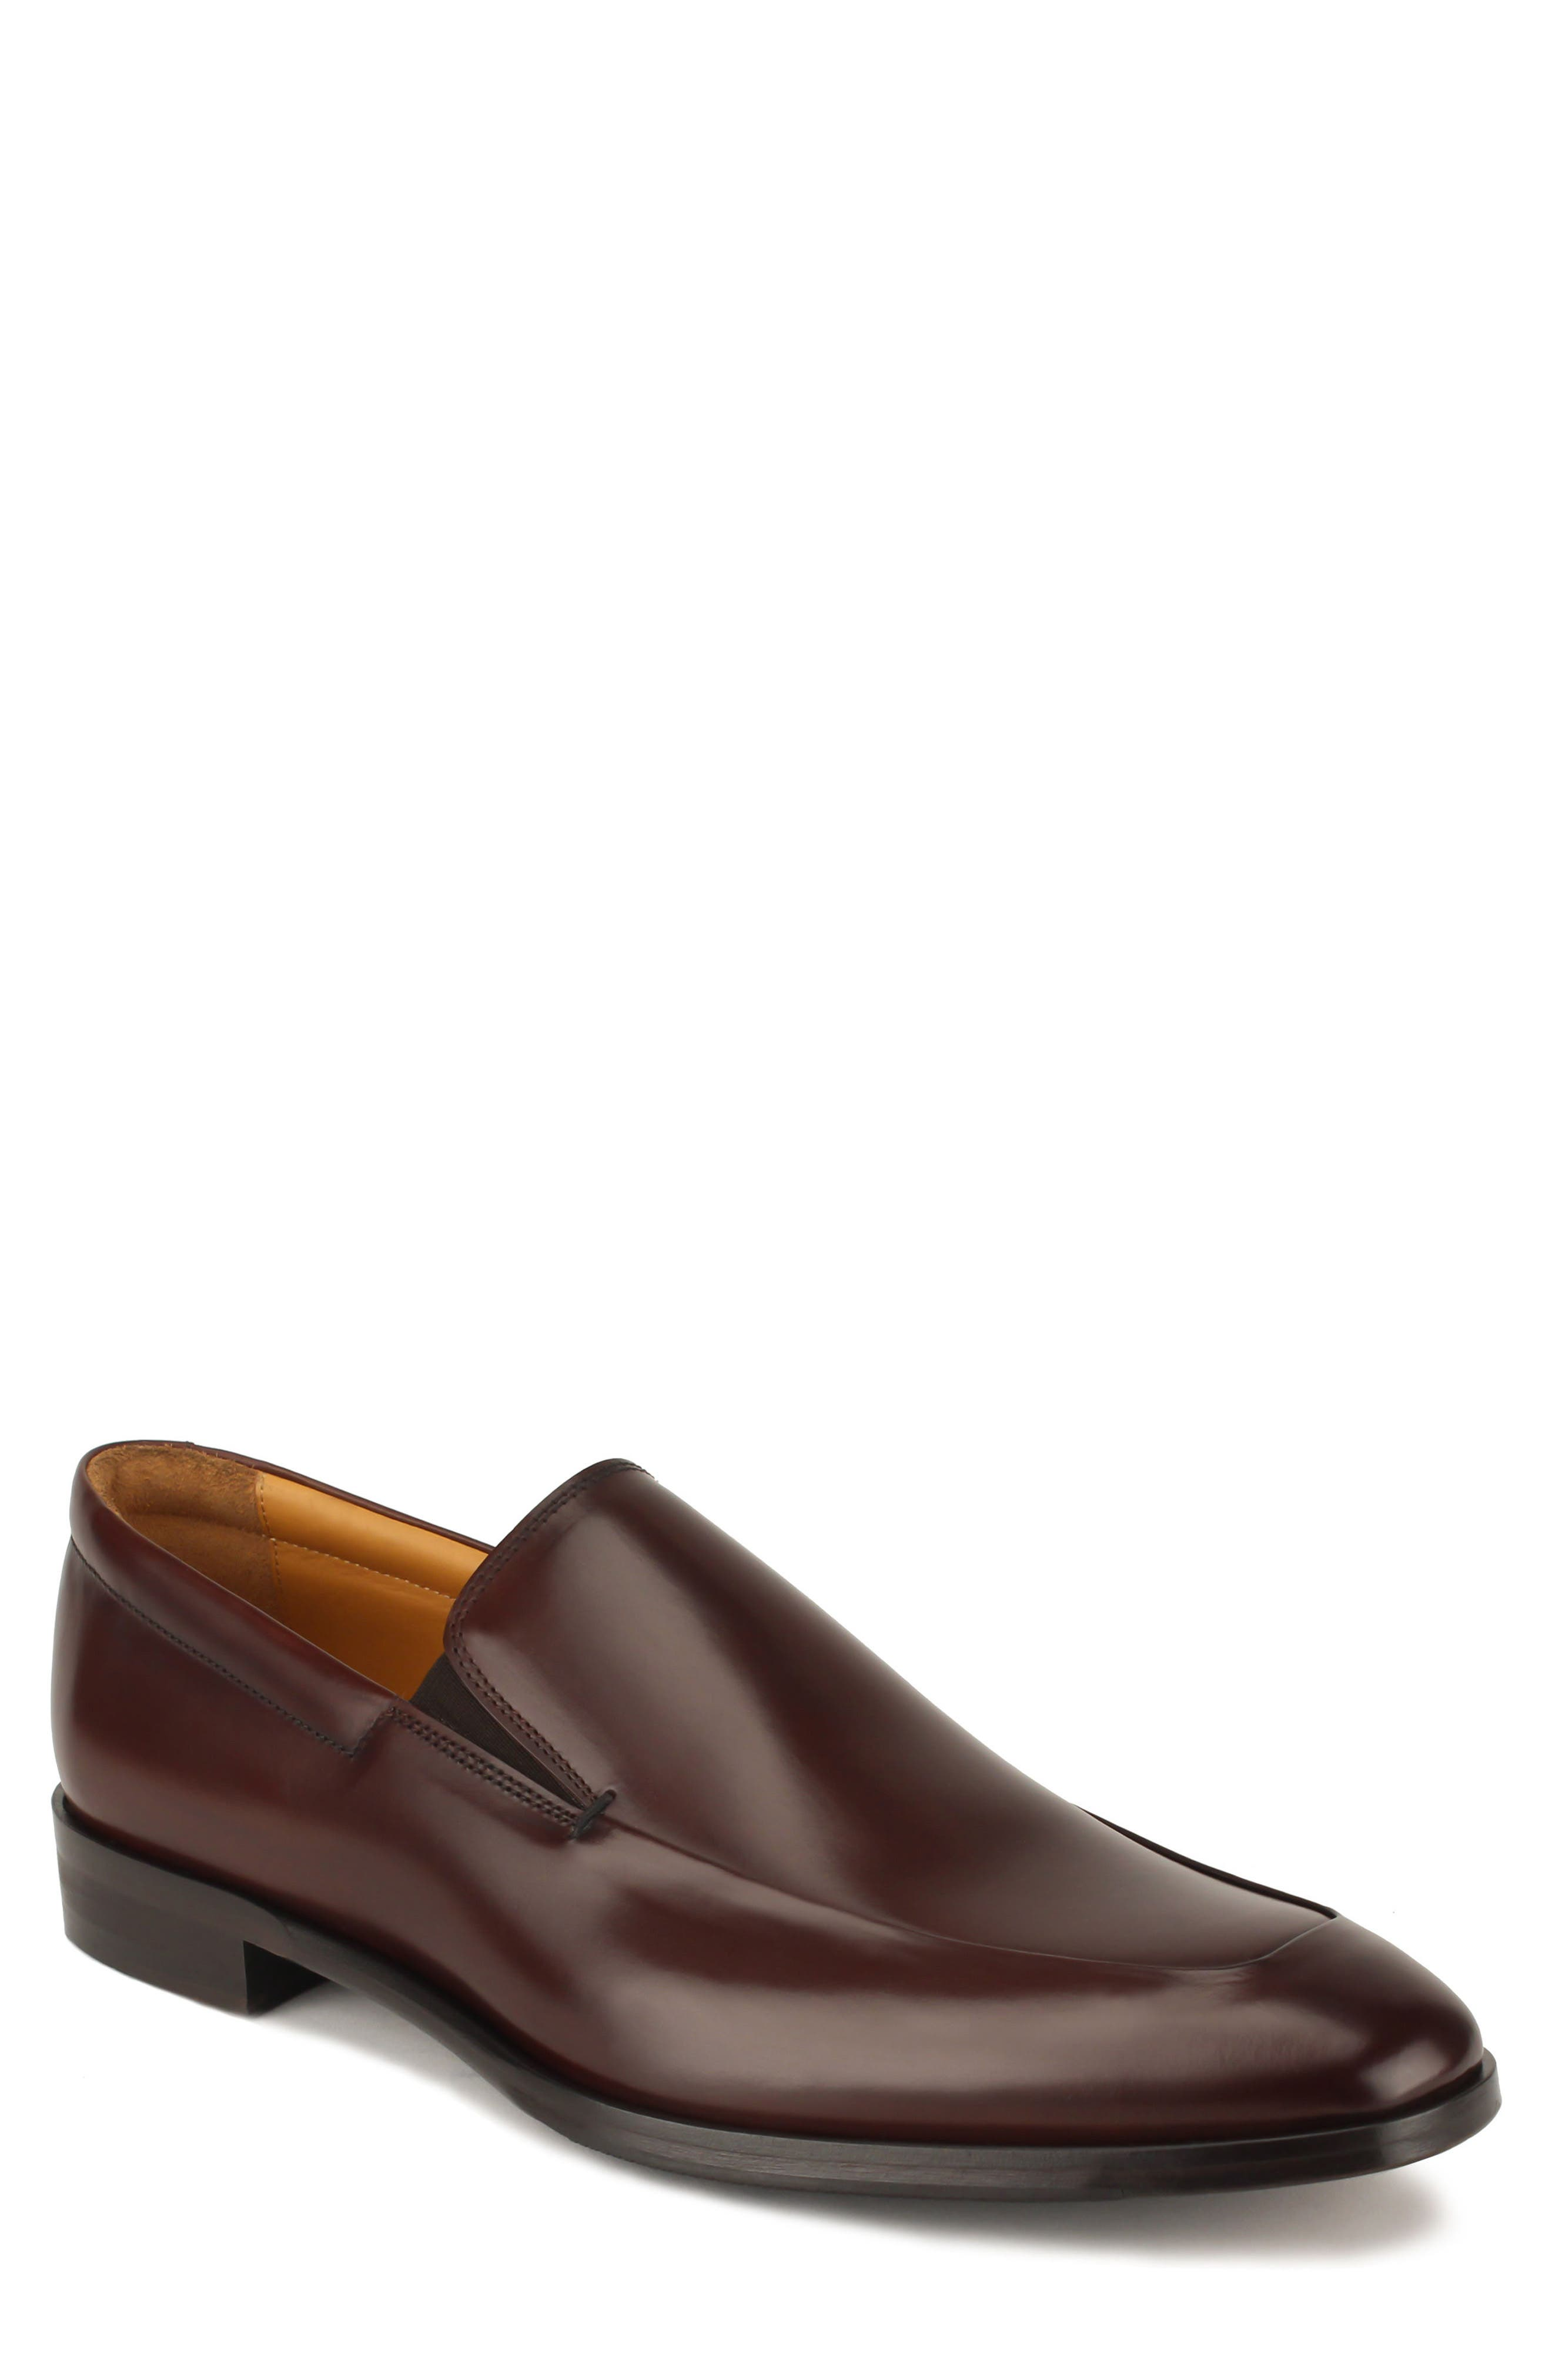 Gordon Rush Brighton II Venetian Loafer (Men)